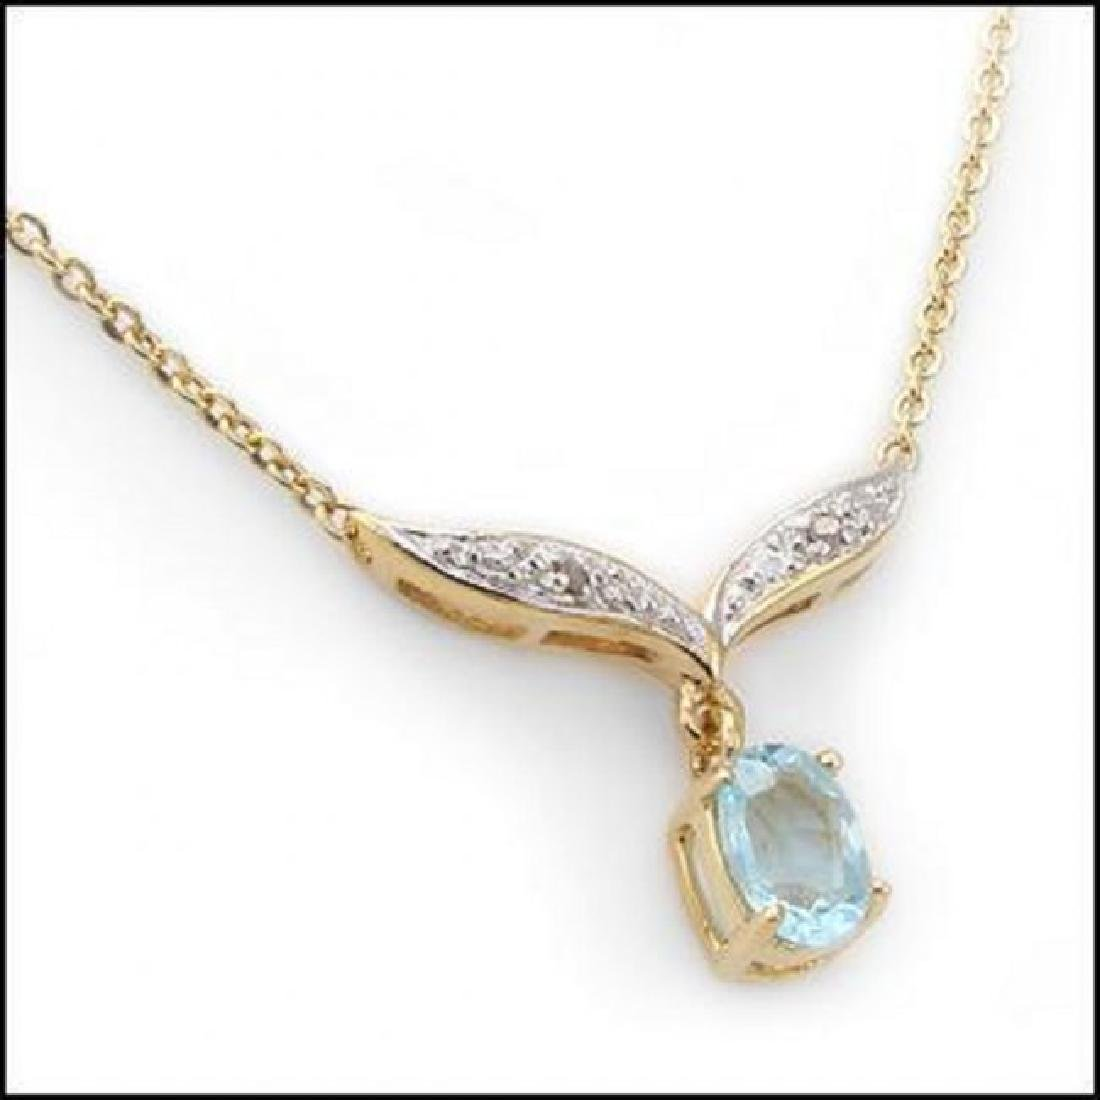 2.91 CT Blue Topaz & Diamond Fine Necklace $820